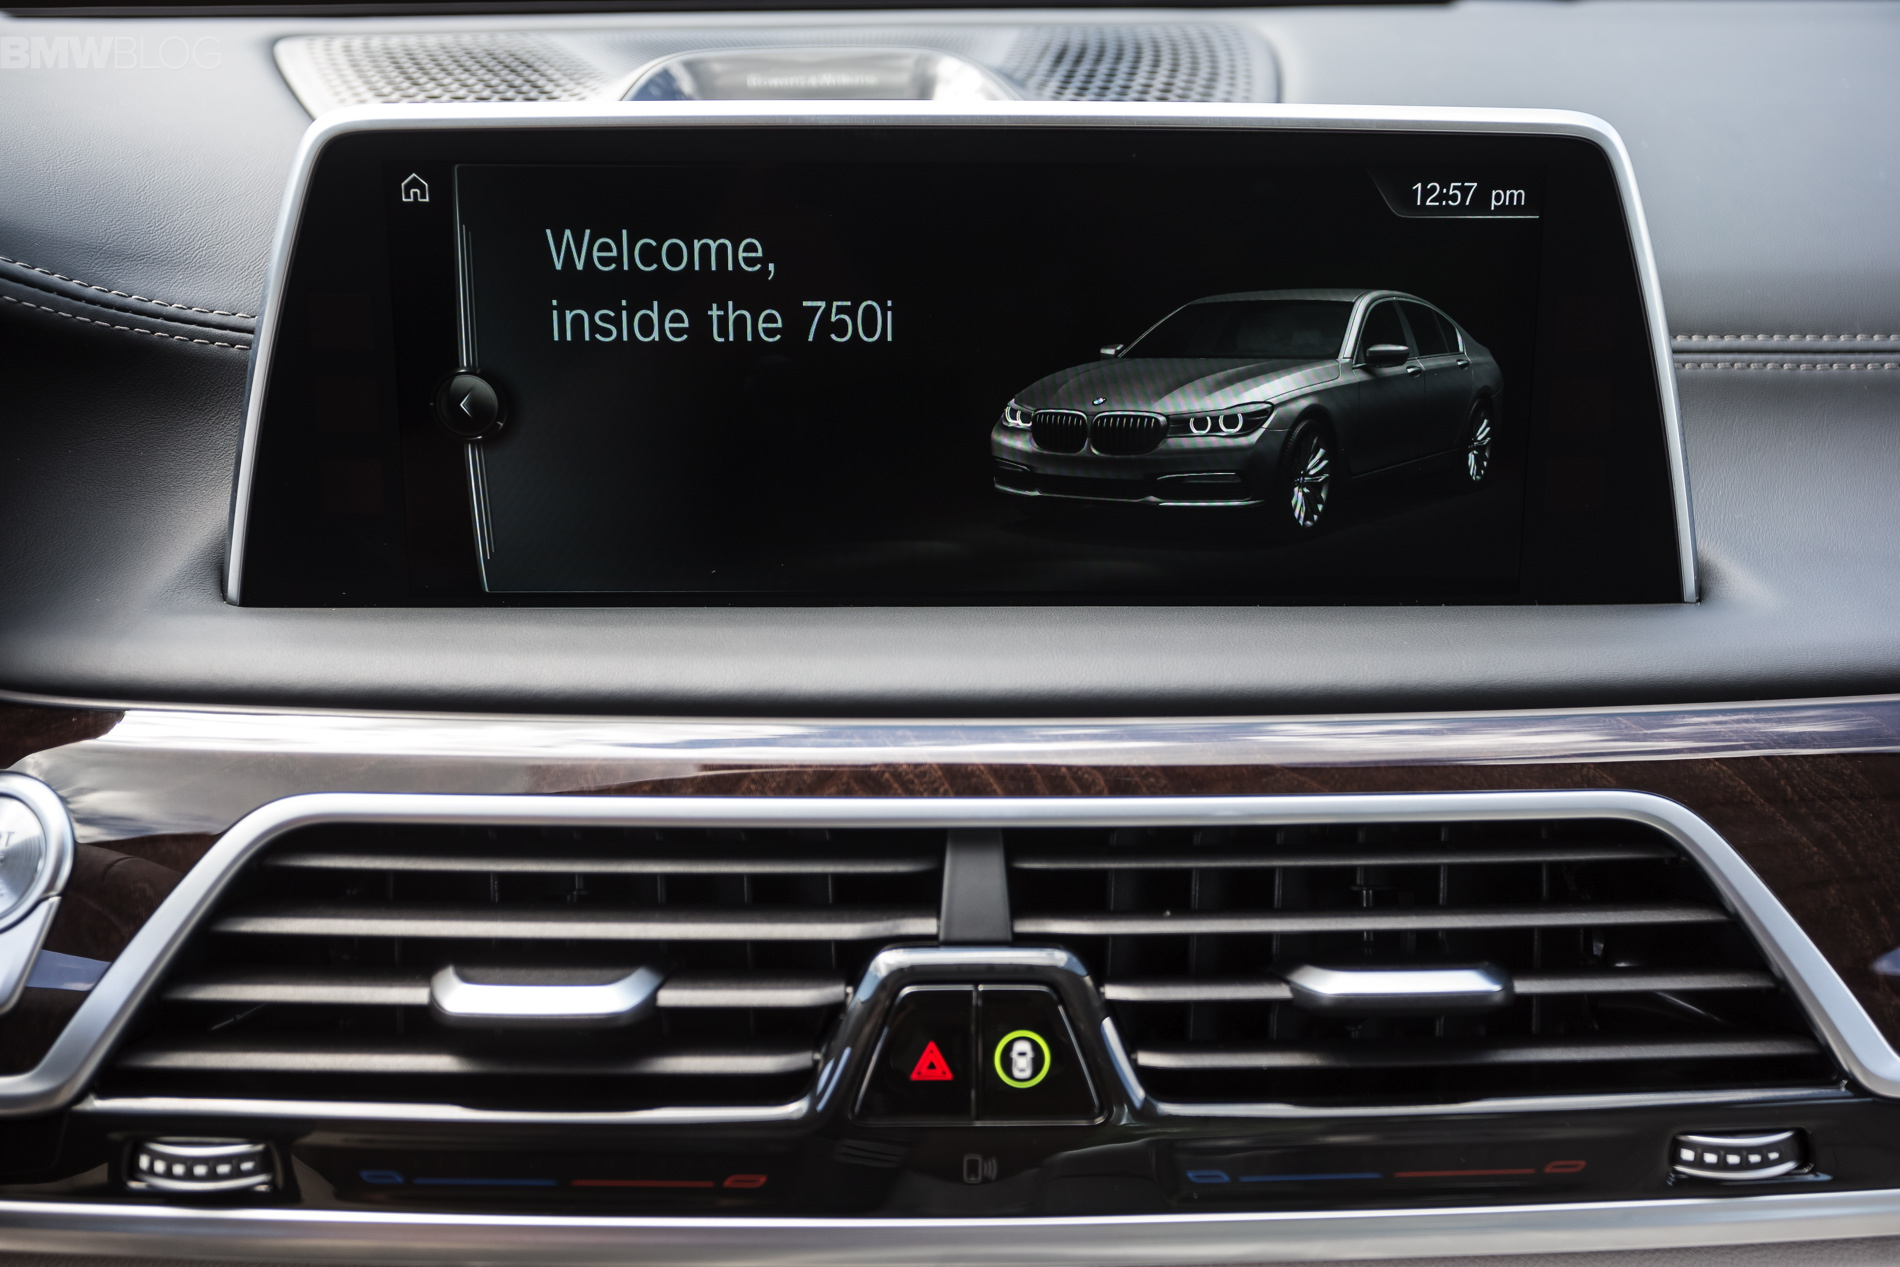 The 2016 Bmw X5 And X6 Will Get A Touchscreen Lcd For The